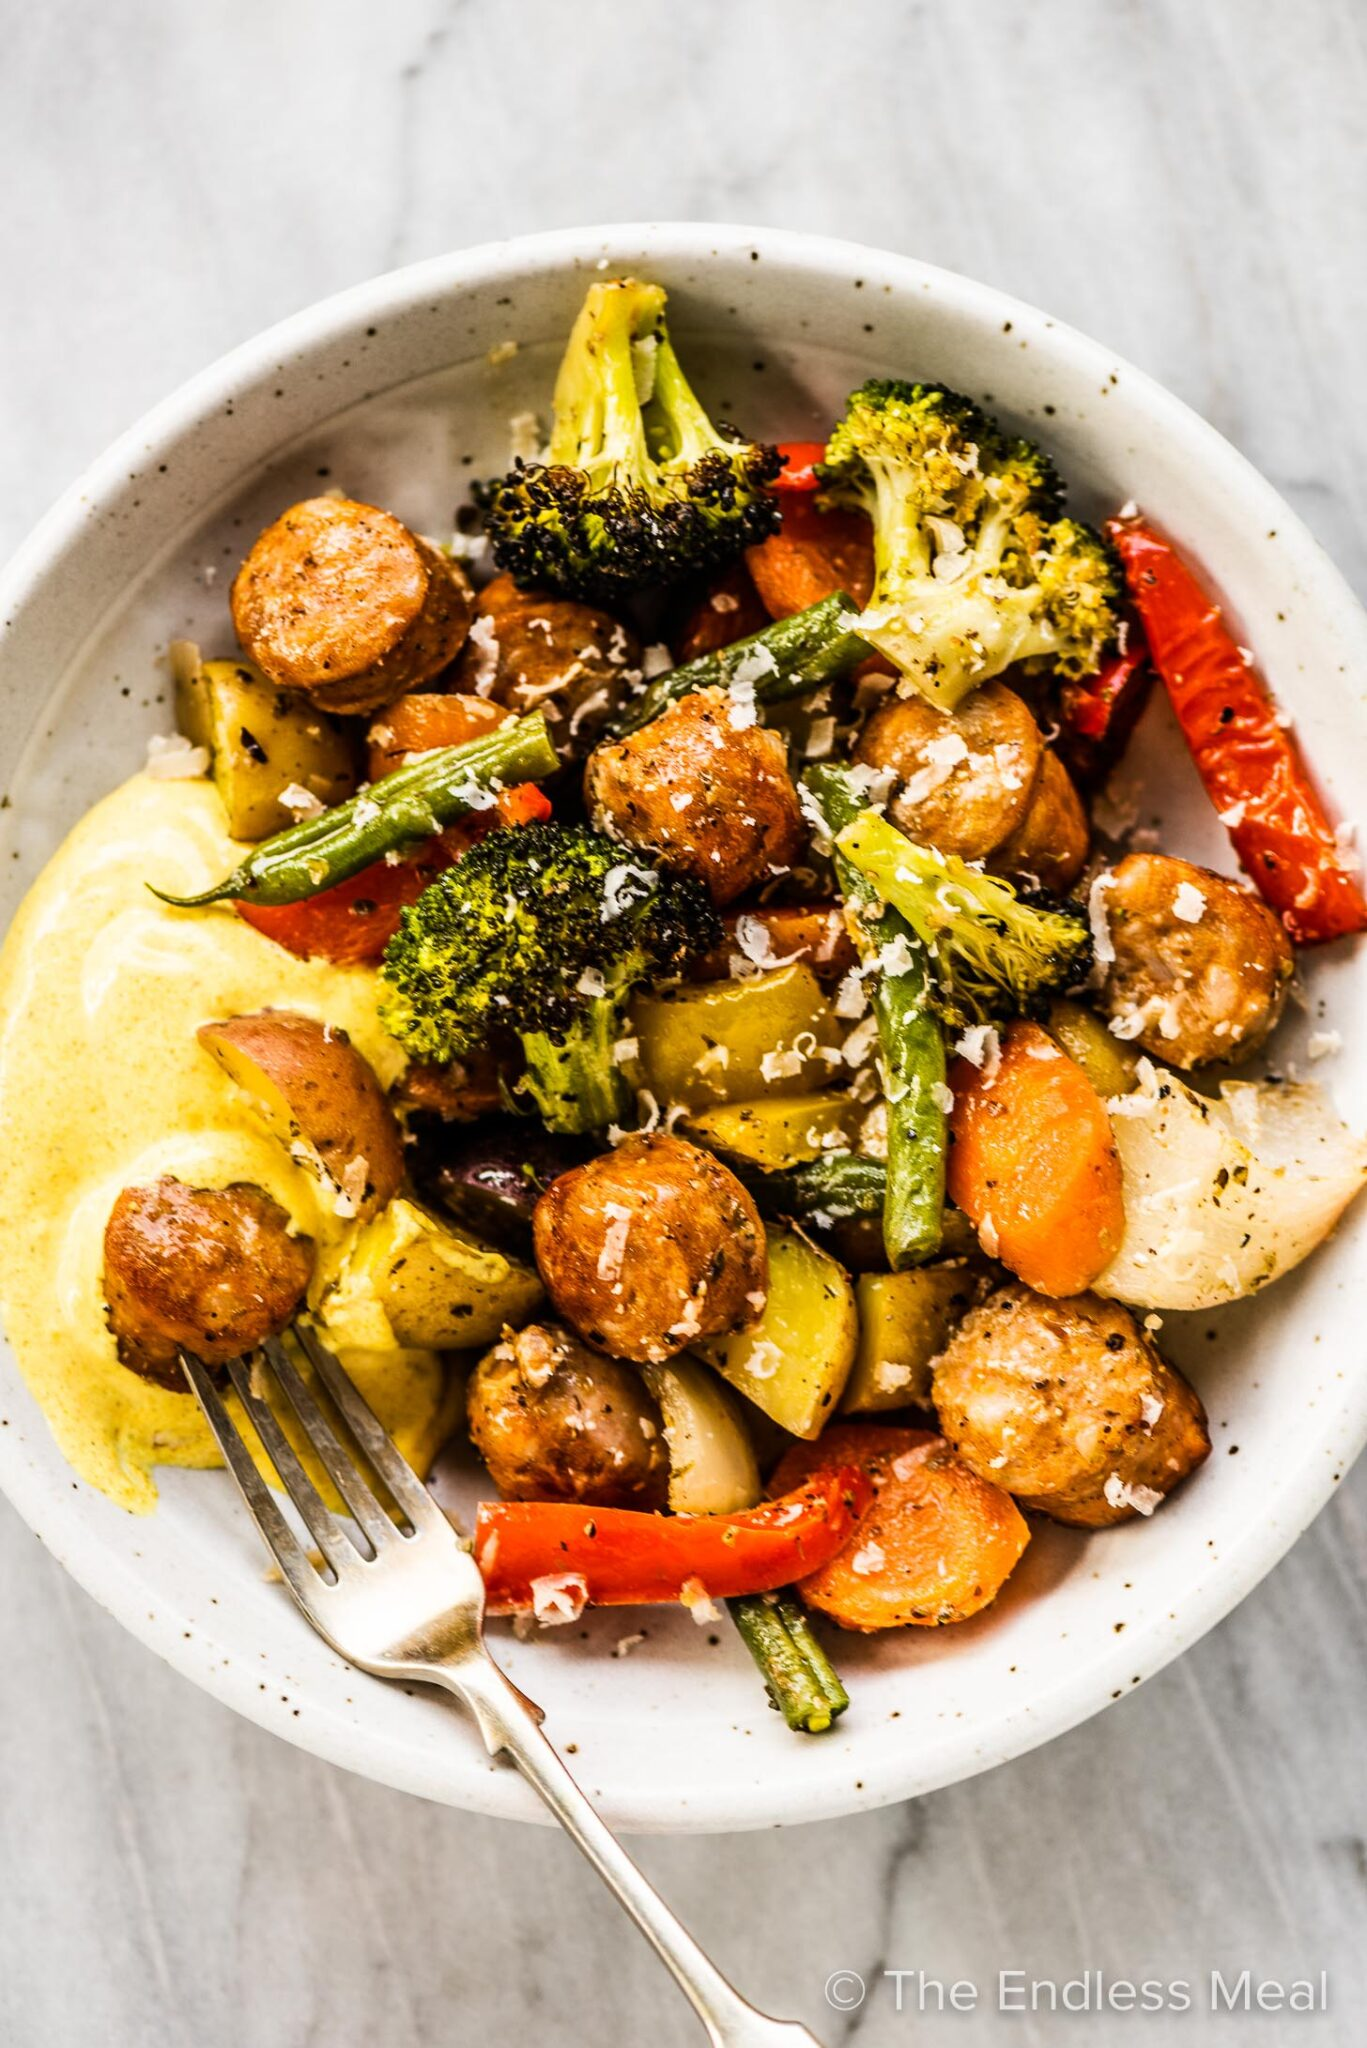 A dinner bowl with sheet pan sausages and veggies and a dipping sauce.